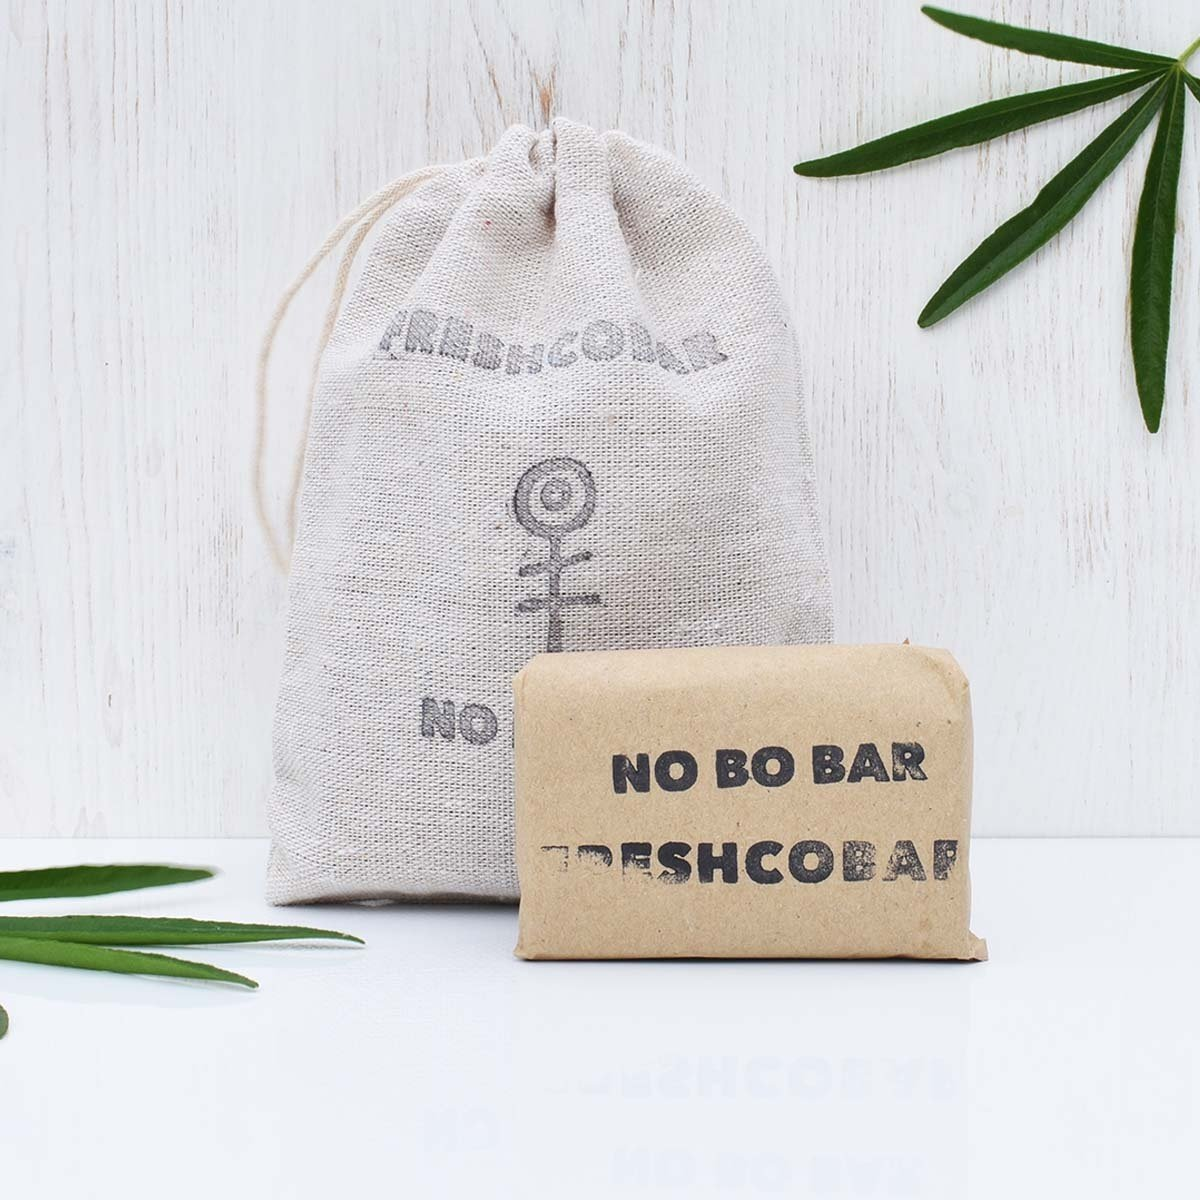 natural vegan deodorant no bo bar freshcobar primal suds and pouch